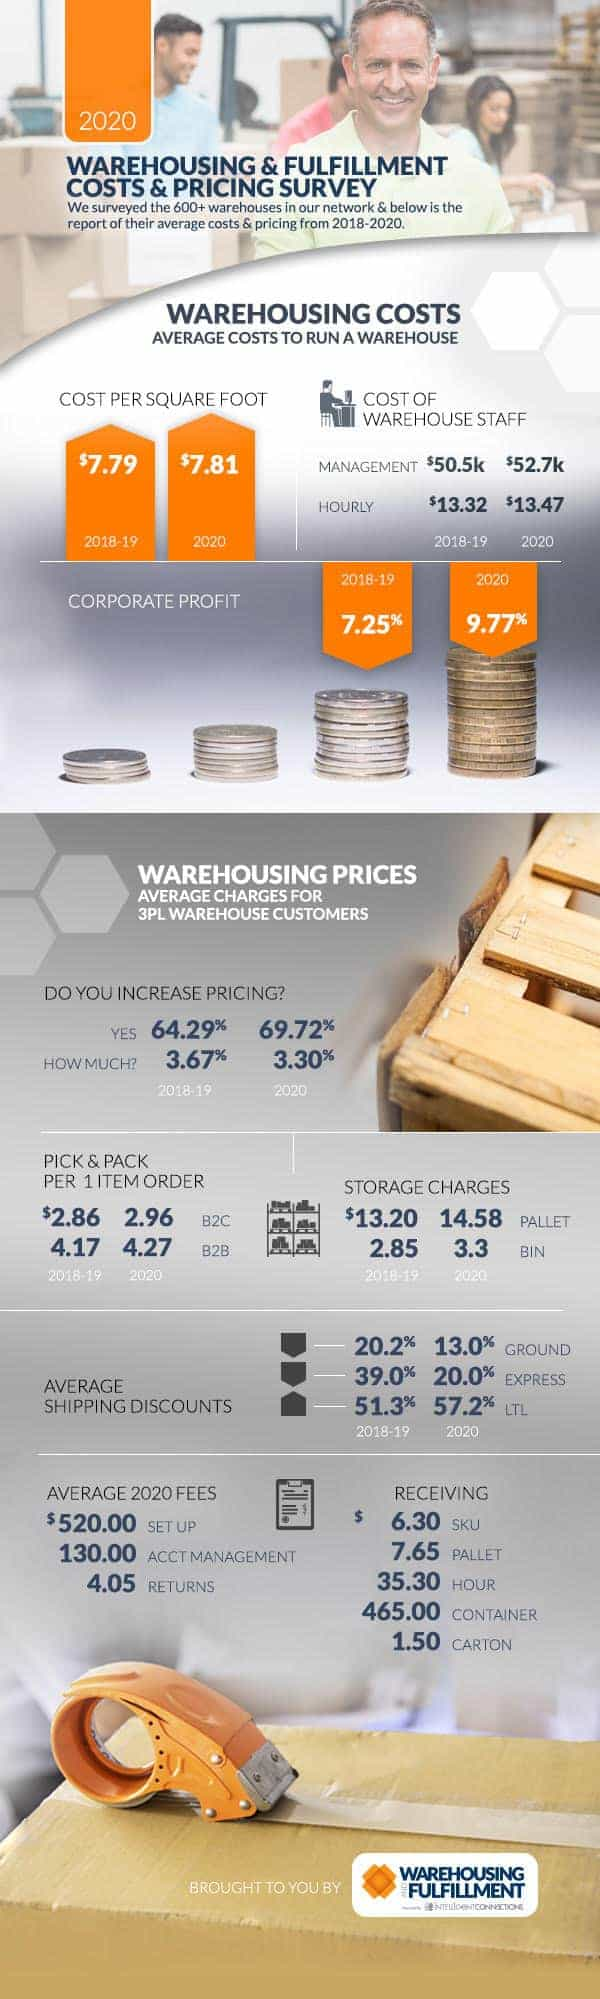 insightQuote's 2020 Warehousing and Fulfillment Pricing and Costs Survey